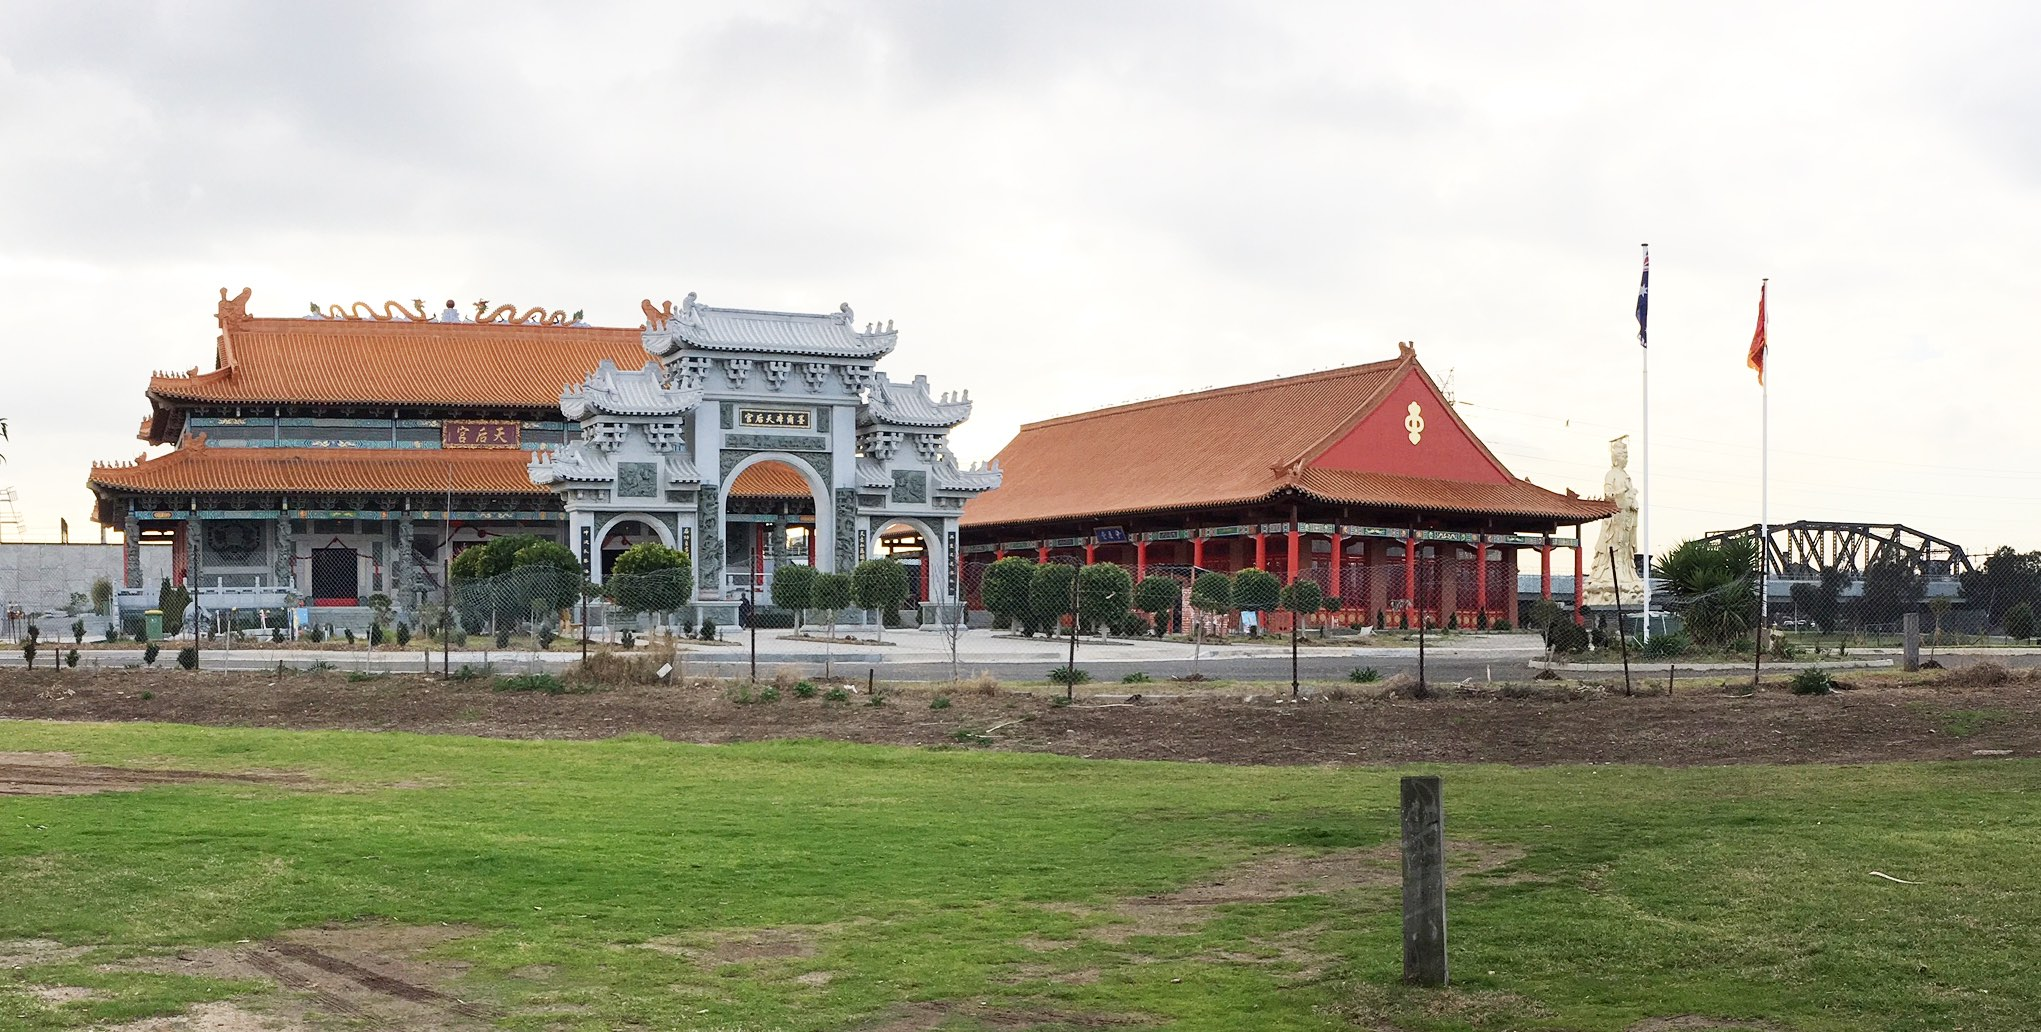 Temple of the Mazu, the Heavenly Queen